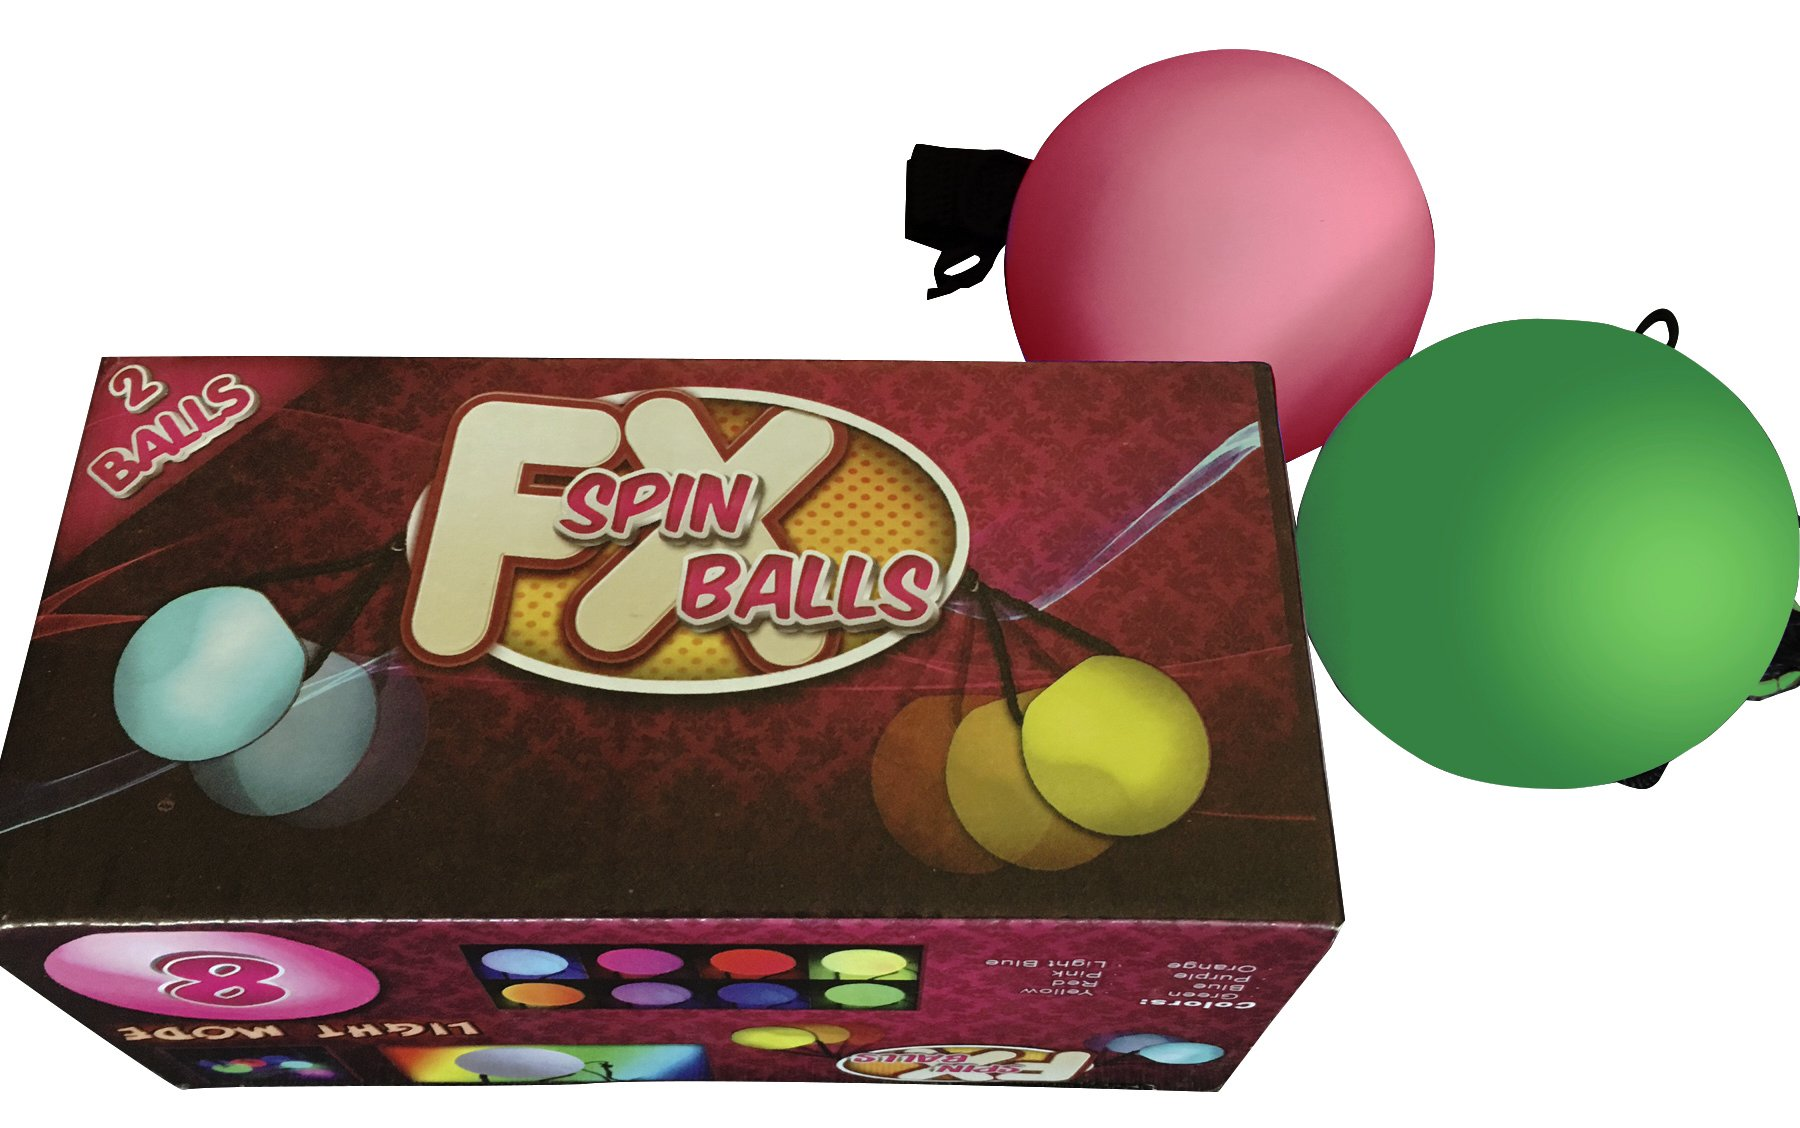 FXspin POI BALLS - 8 BRIGHT COLORS - with Automatic Color Mode - Batteries Included